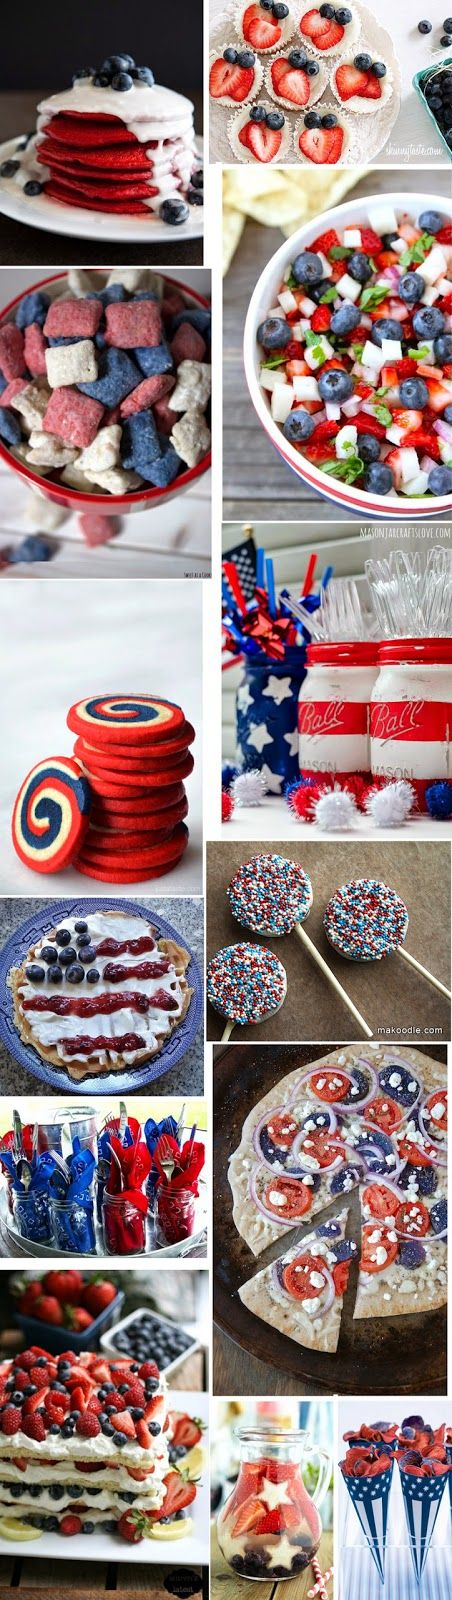 fourth of july foods to avoid during pregnancy